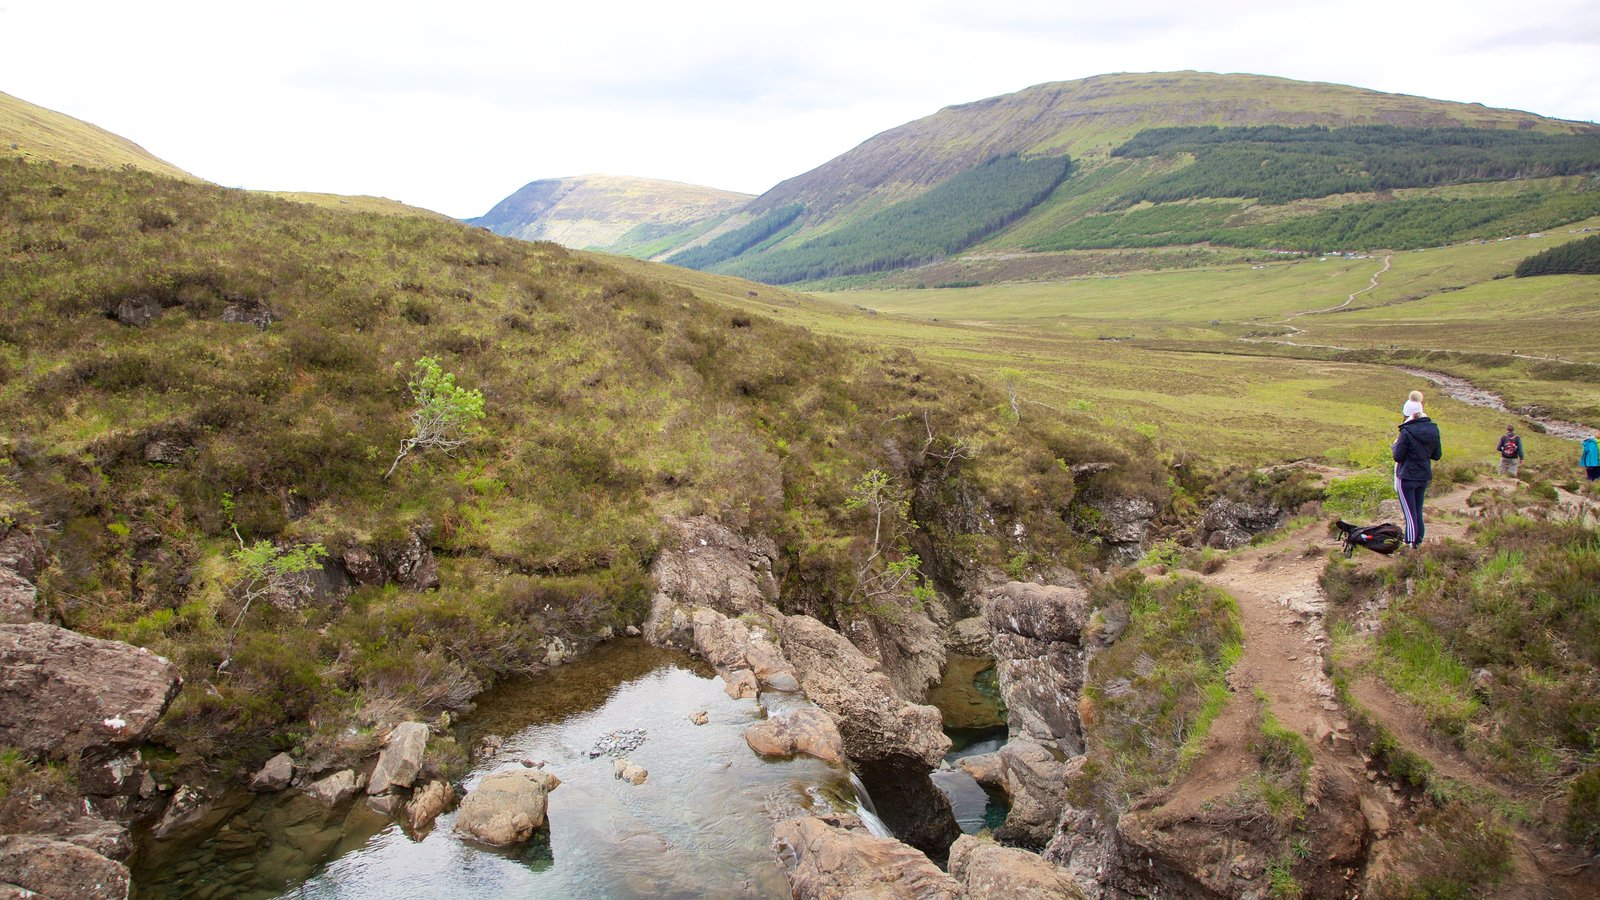 Isle of Skye showing tranquil scenes, hiking or walking and a river or creek